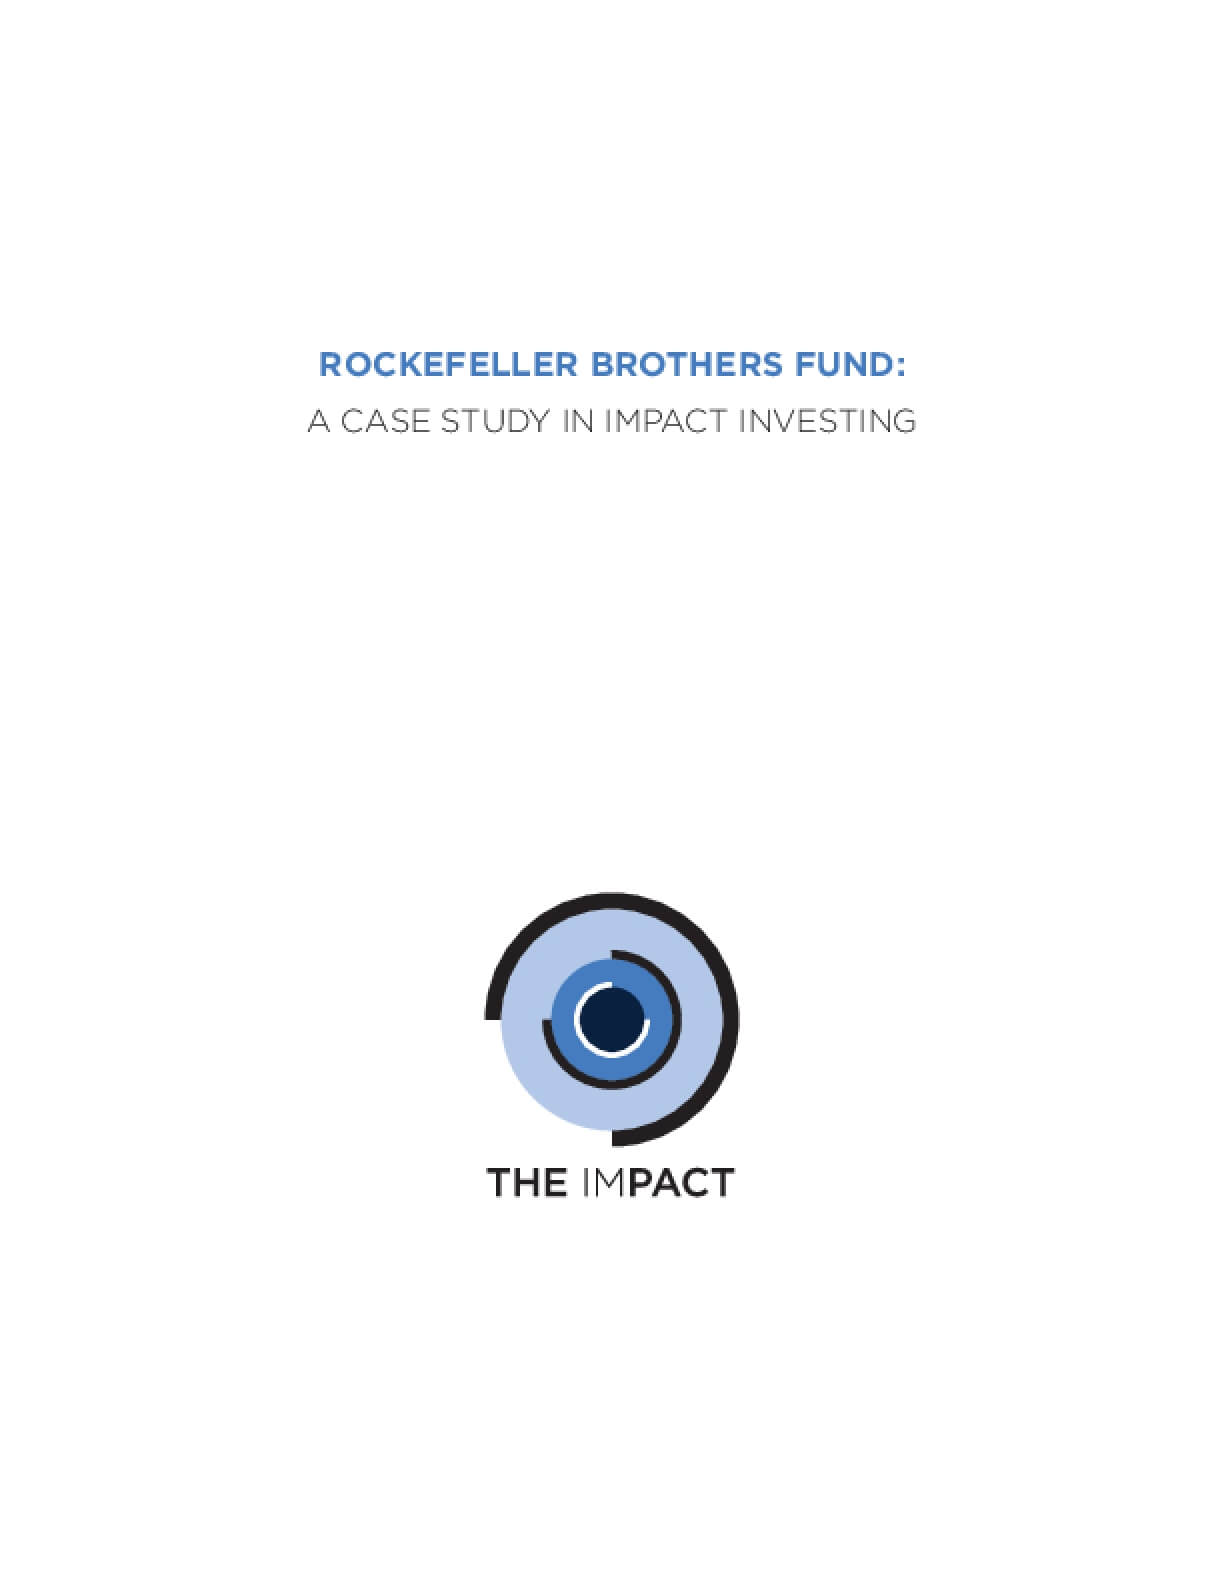 Rockefeller Brothers Fund : A Case Study In Impact Investing